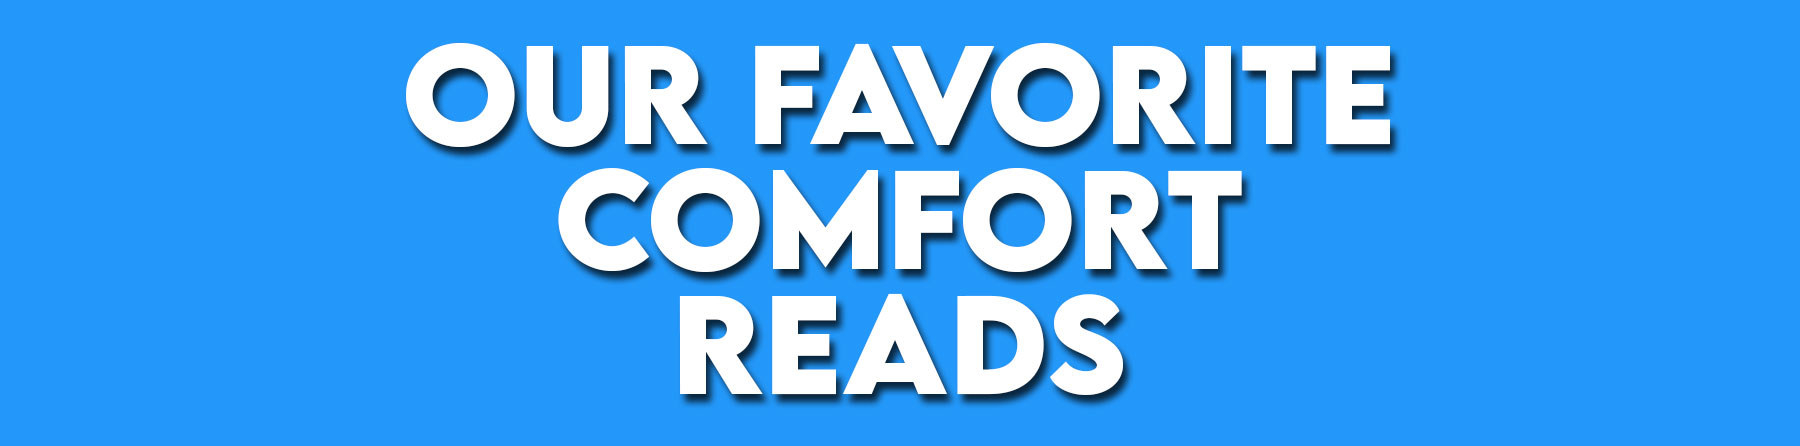 Our Favorite Comfort Reads